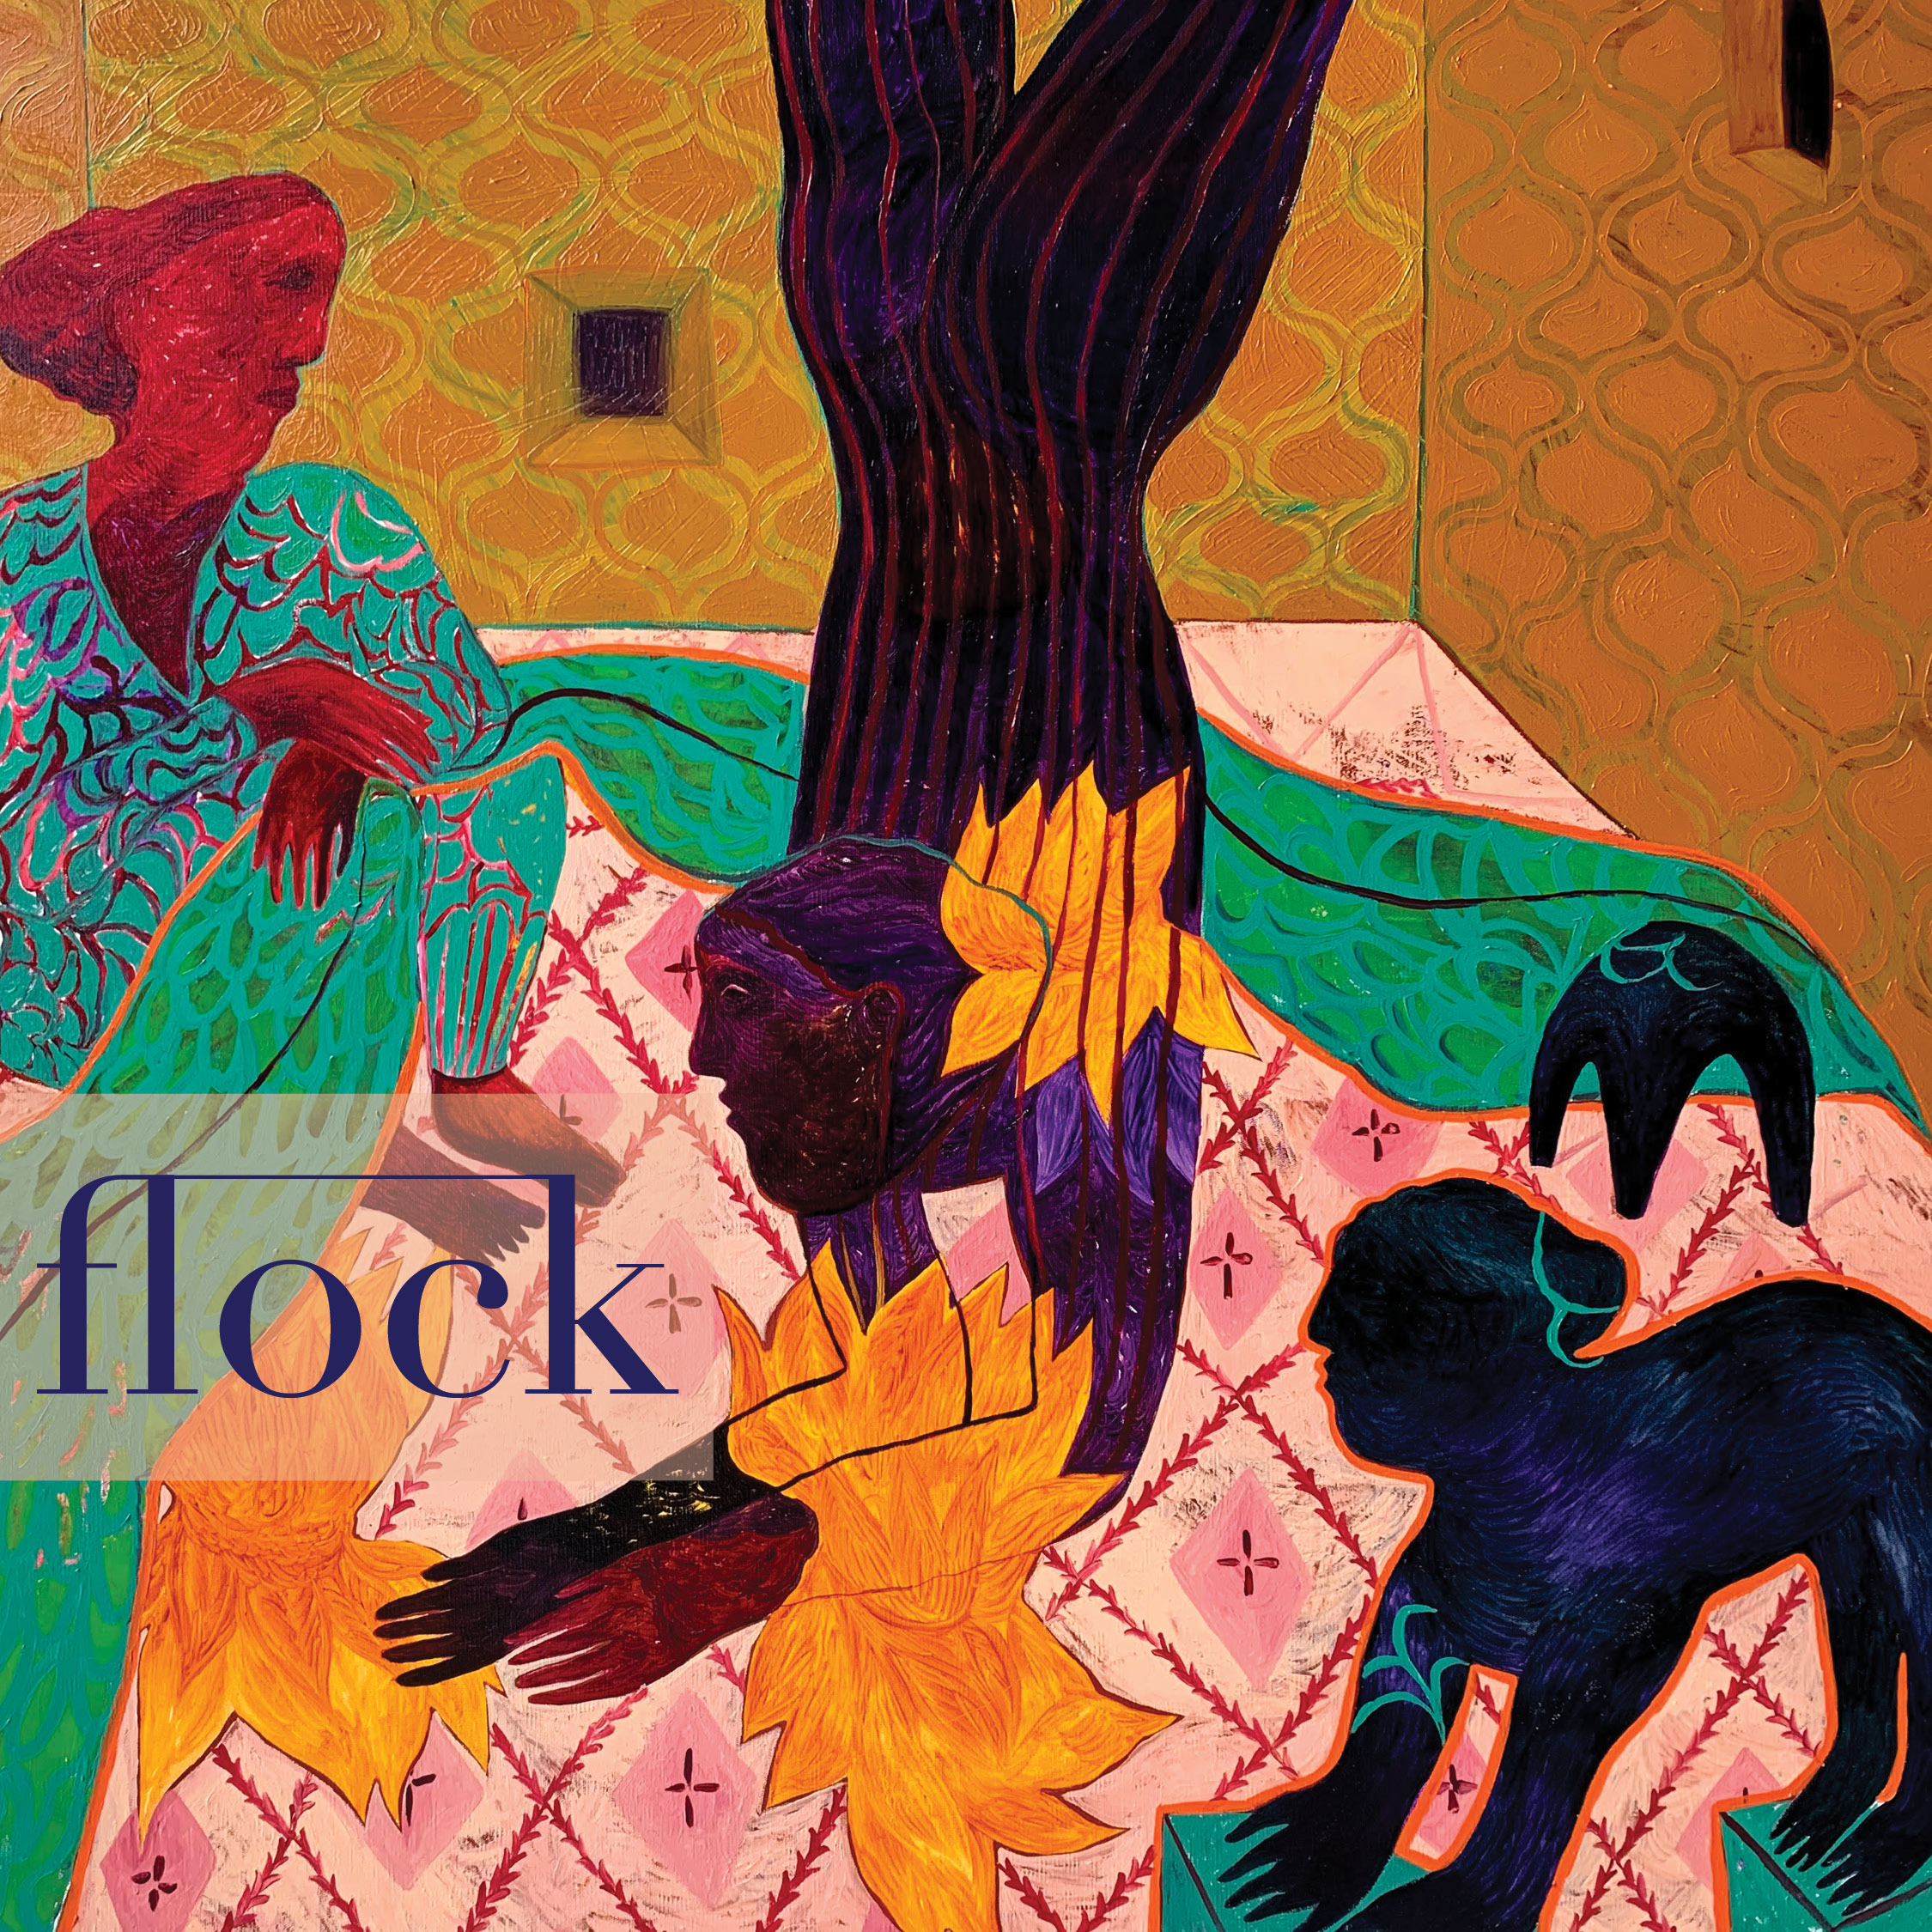 Flock 24 Cover Image